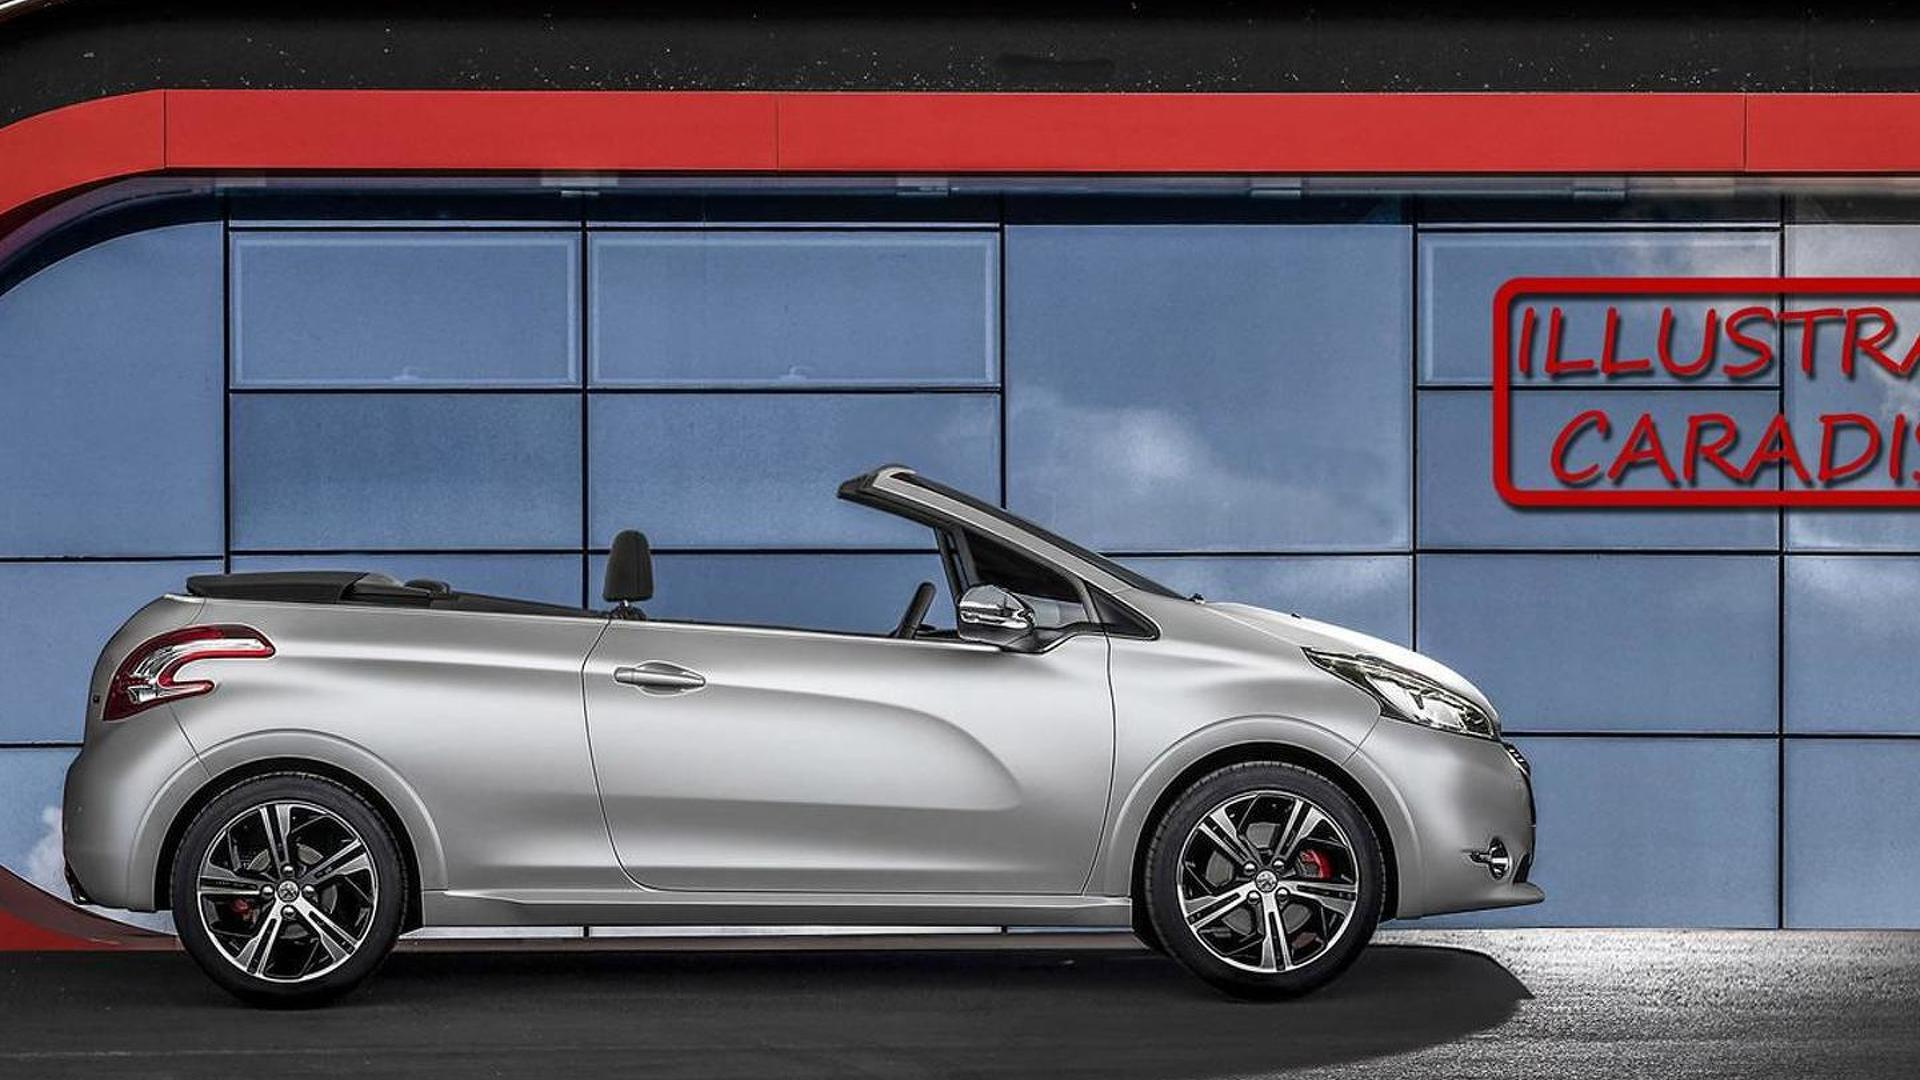 peugeot 208 convertible due in 2015 with soft top report. Black Bedroom Furniture Sets. Home Design Ideas